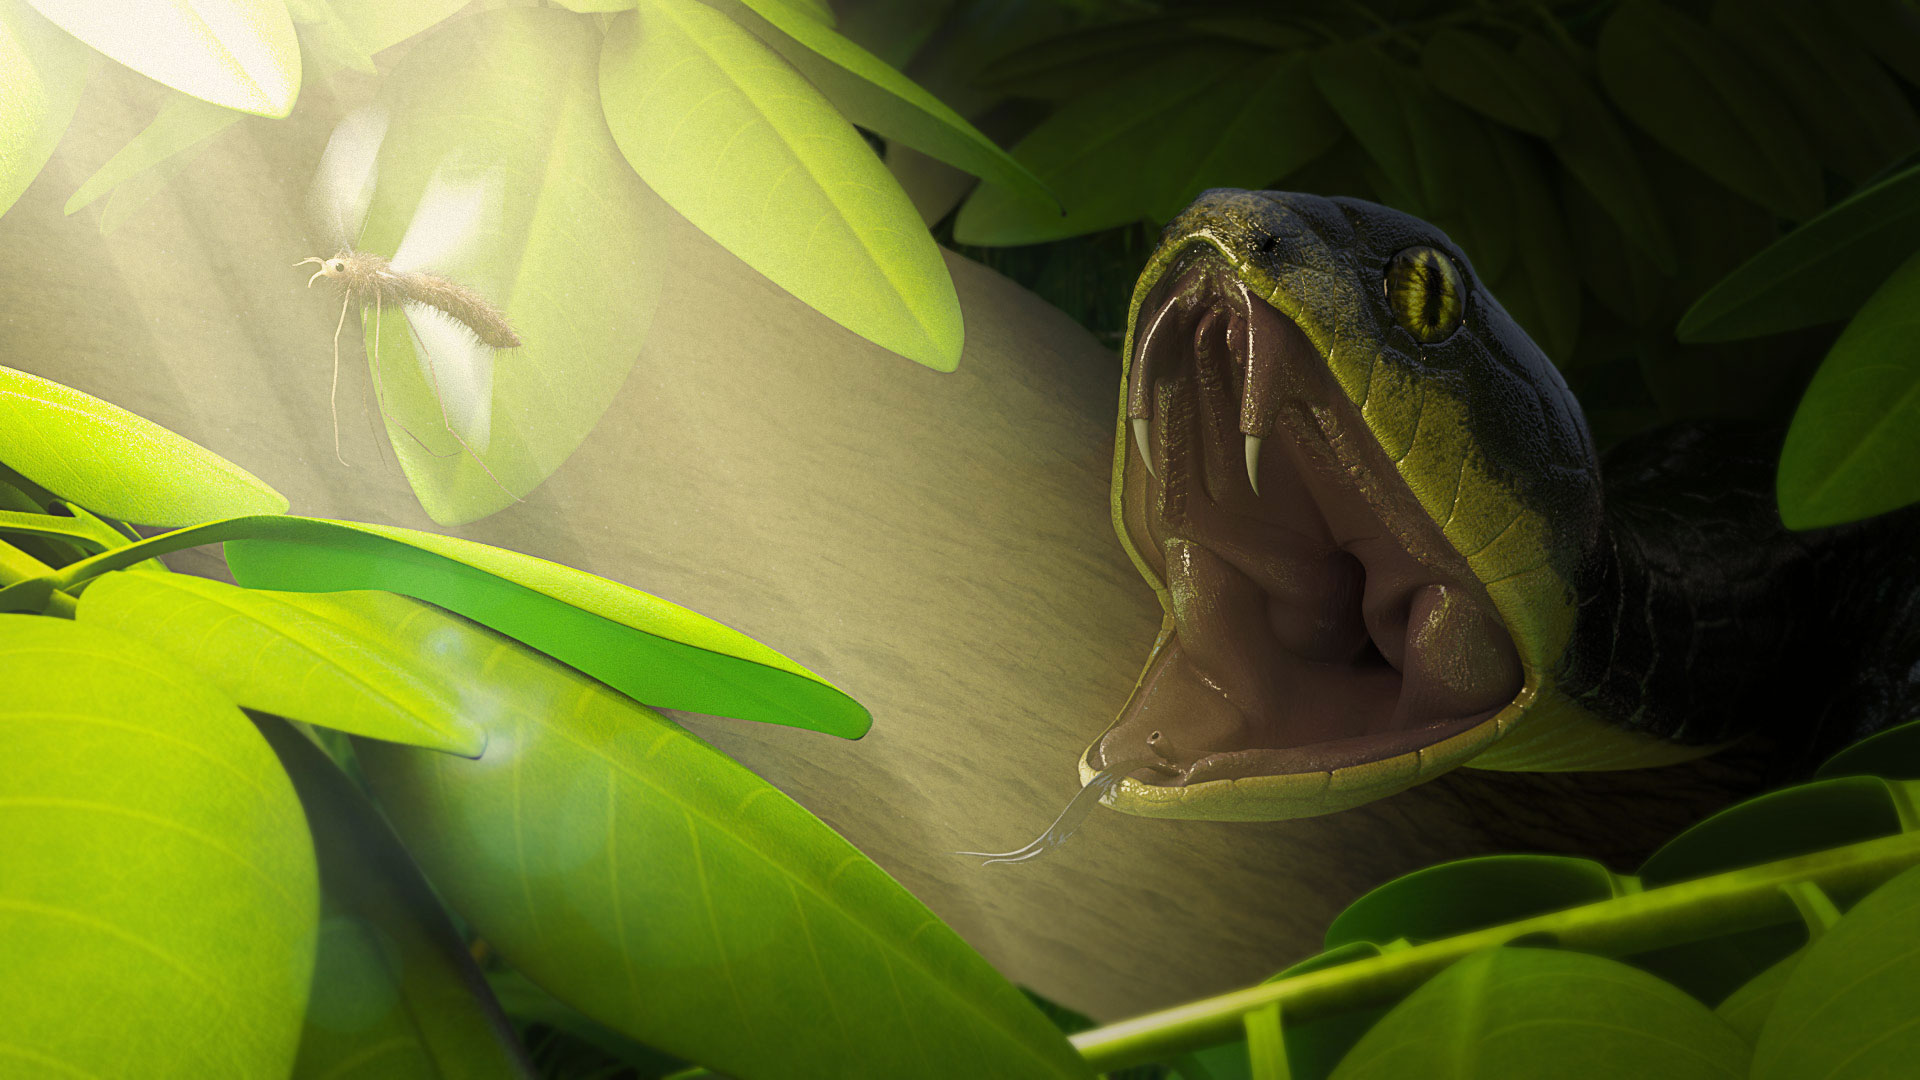 Snake-Attack_Compositing_Beauty_02